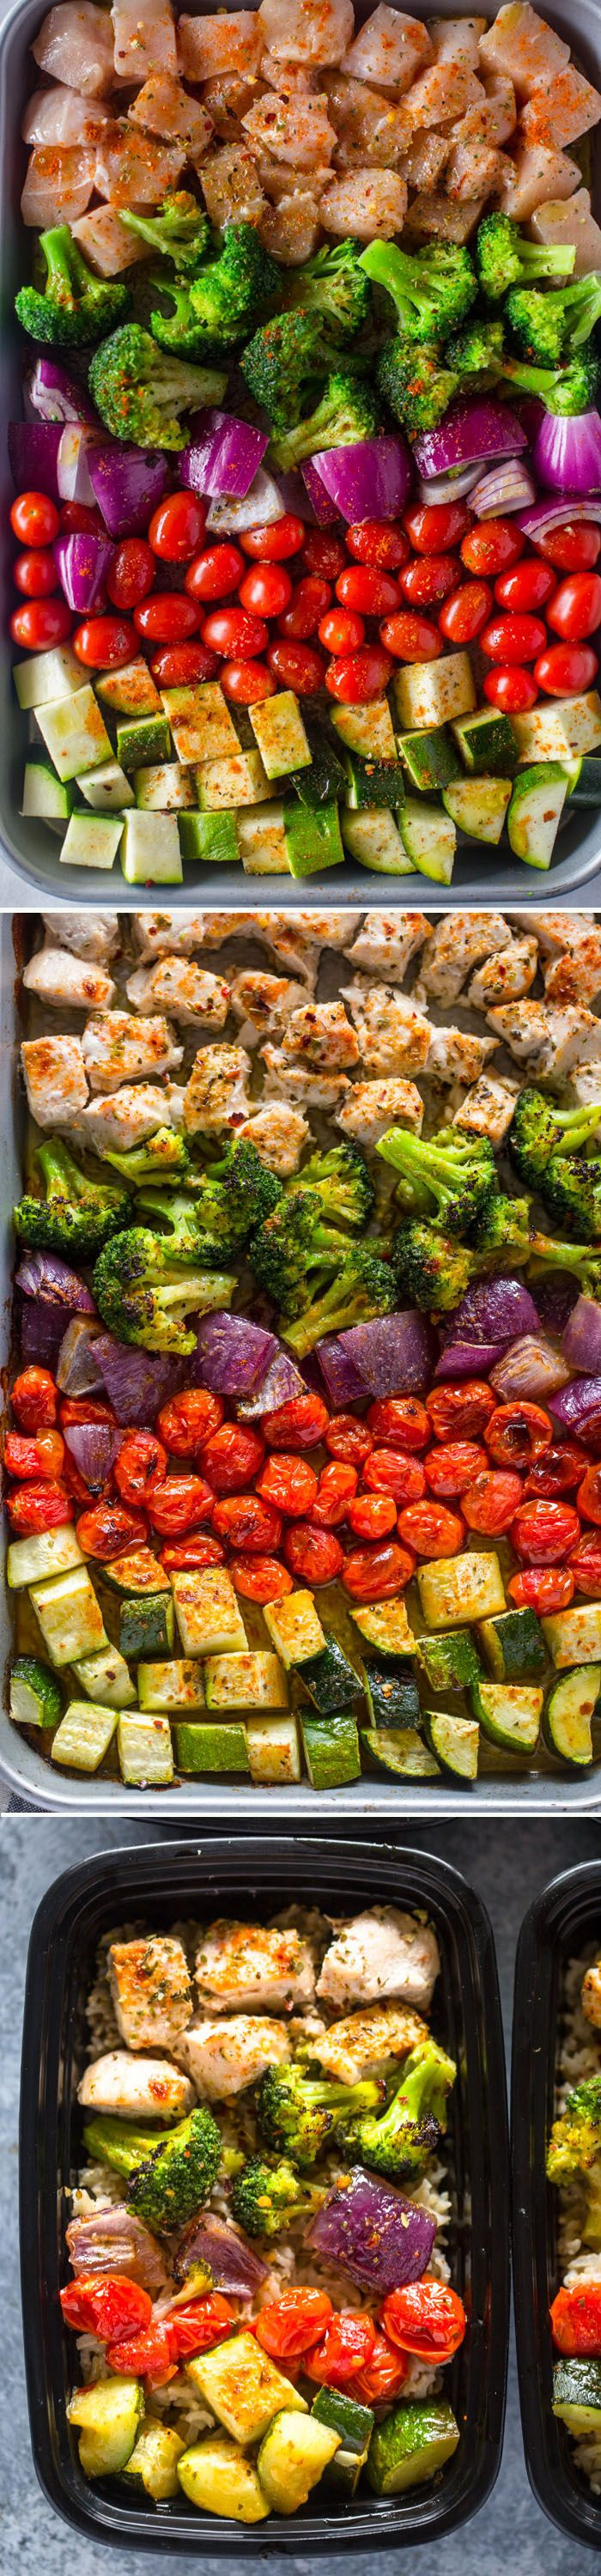 Meal Prep - Healthy Roasted Chicken and Veggies #mealprepplans